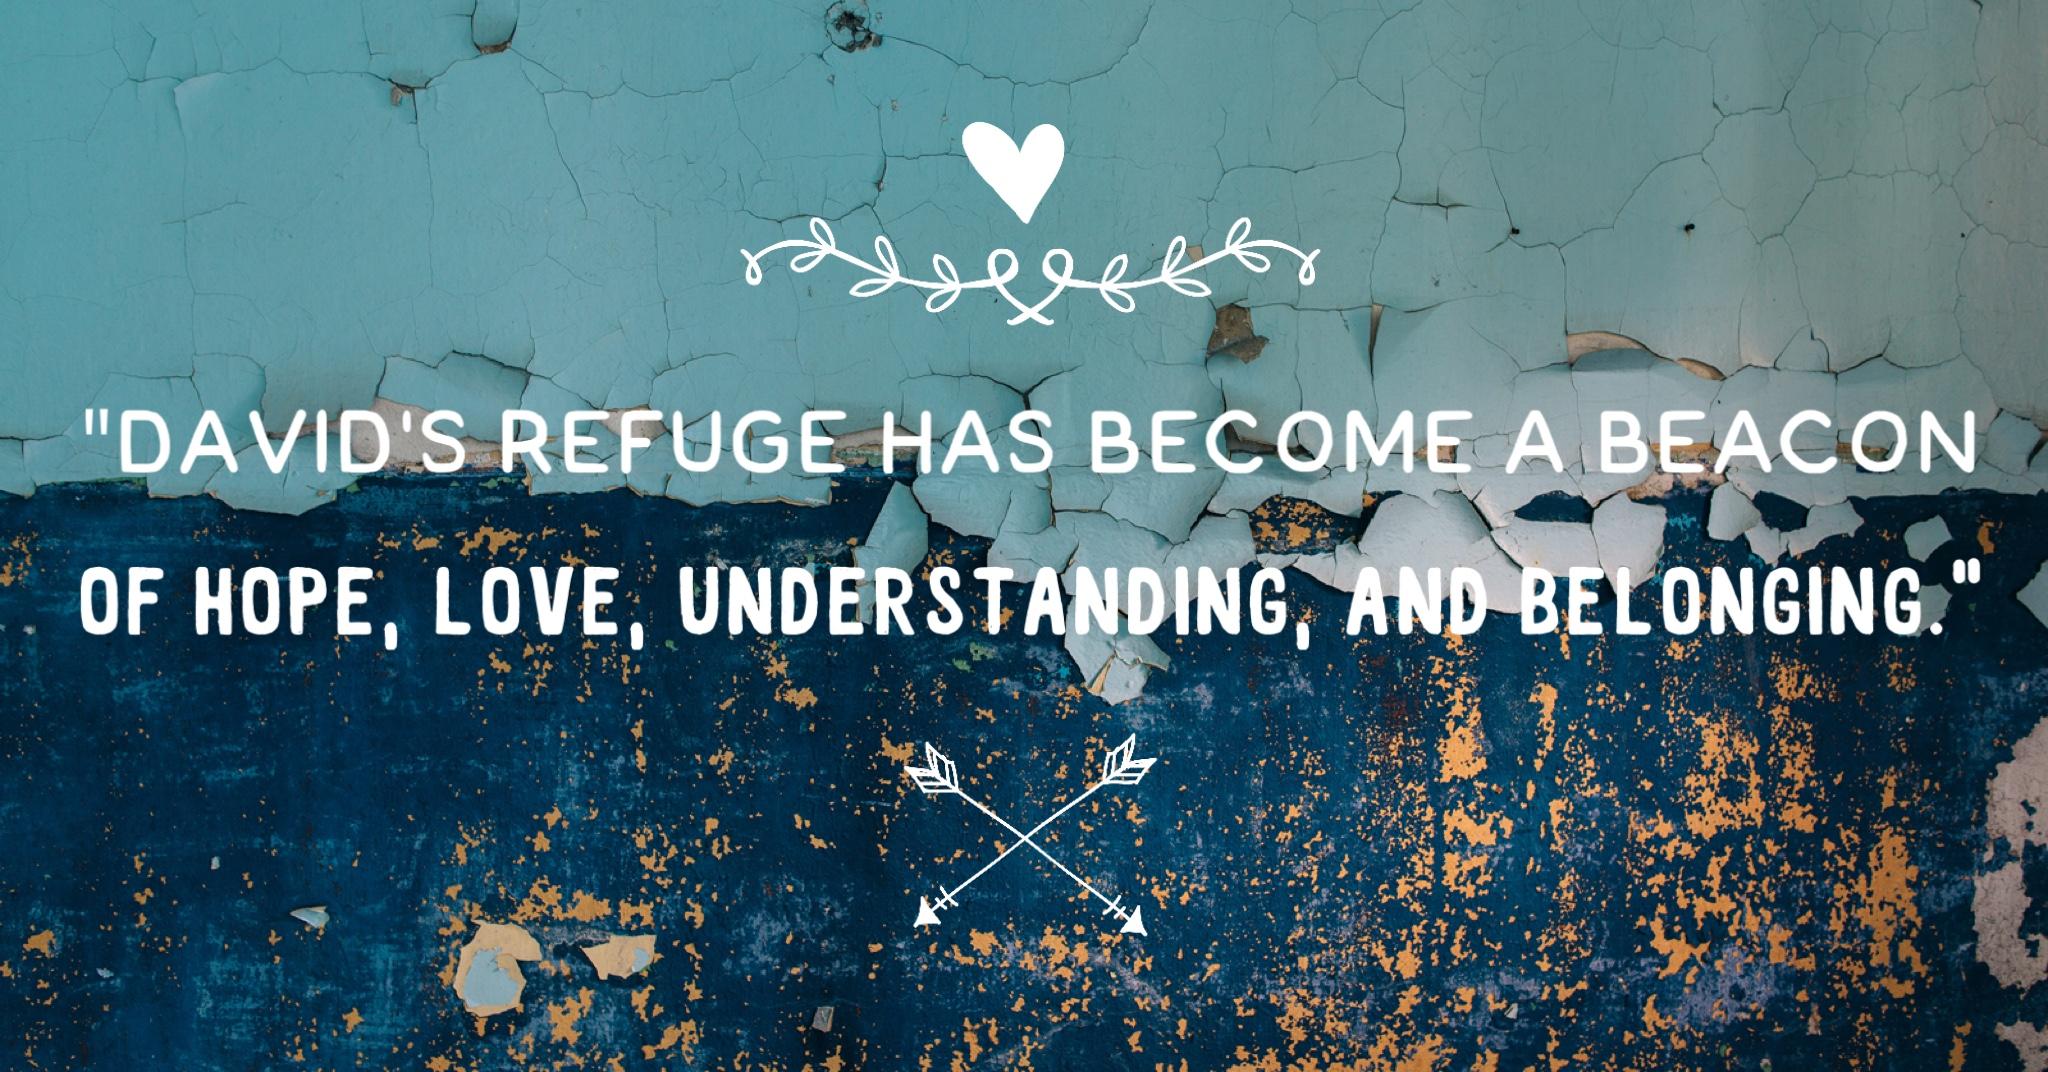 hope-love-understanding-belonging